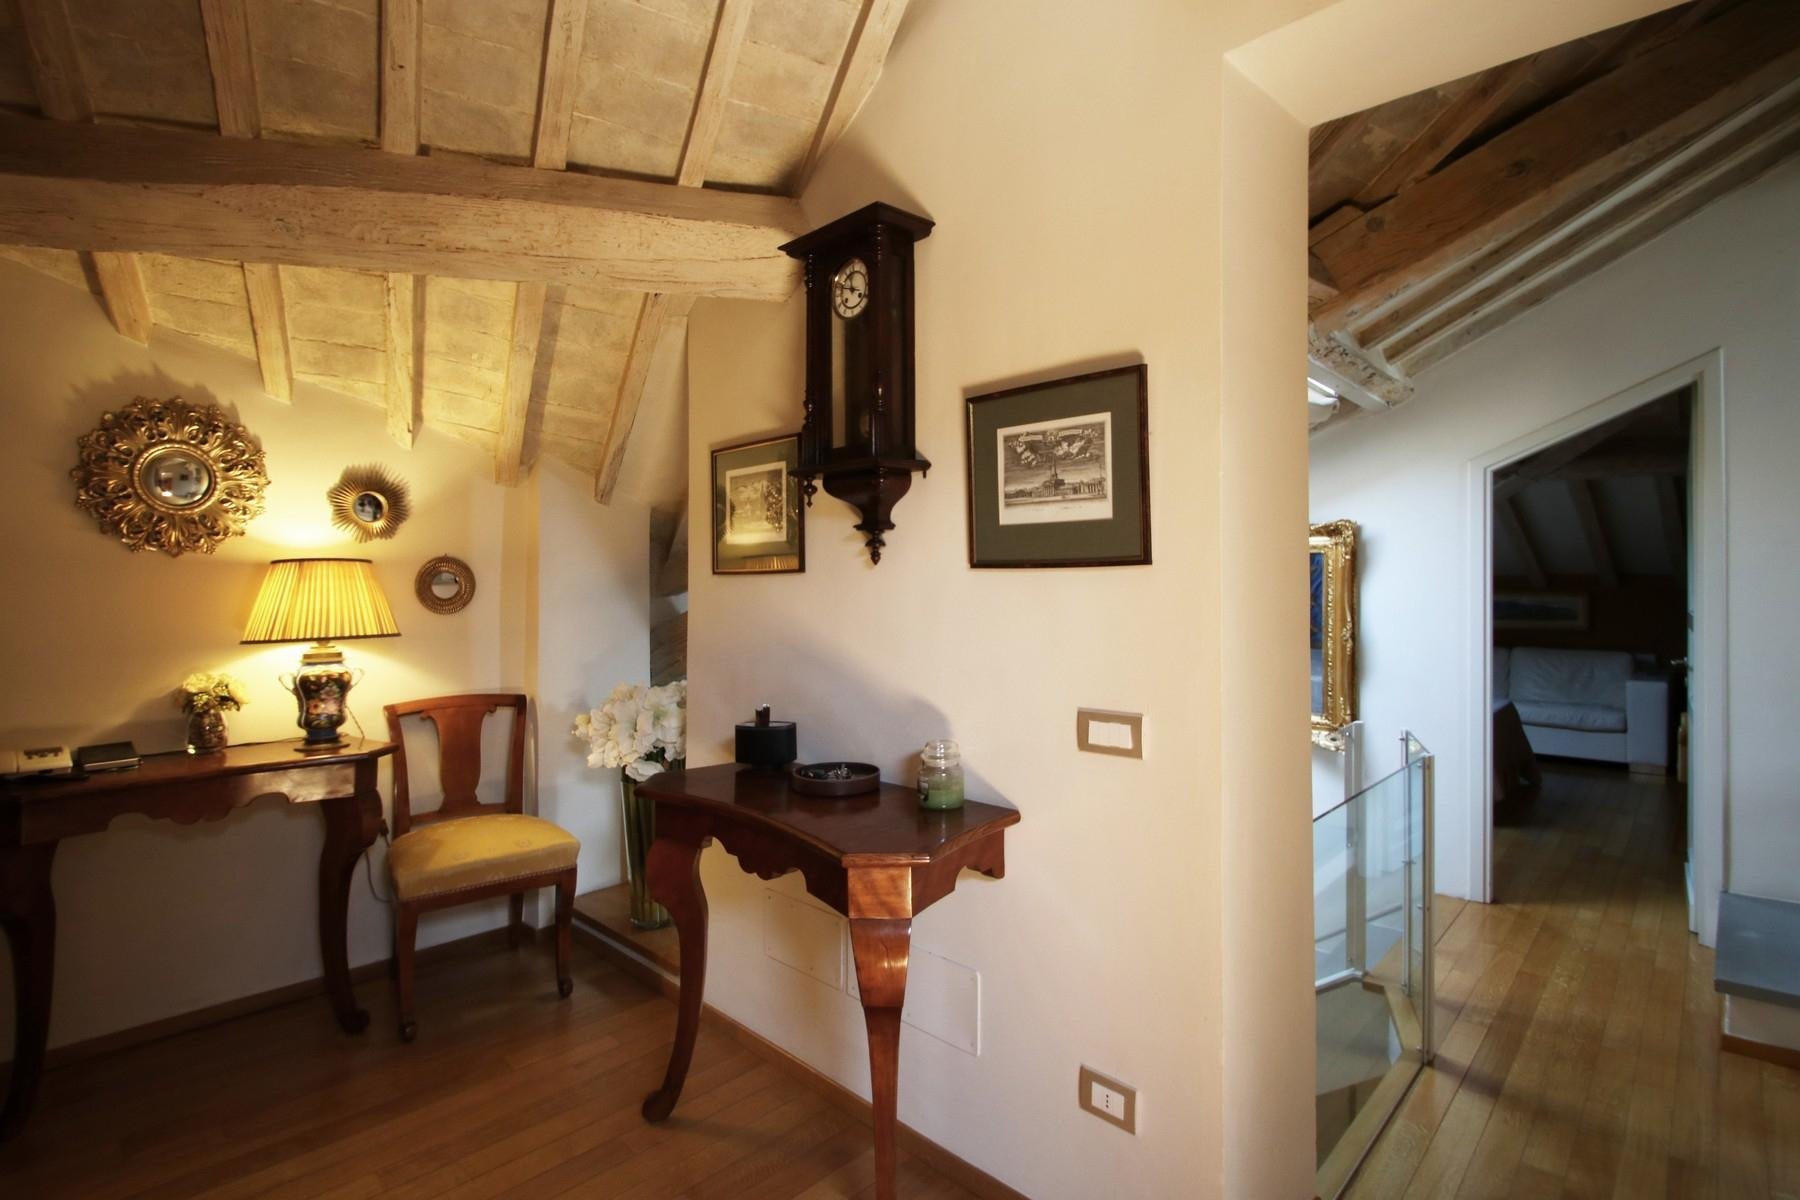 Flamboyant Top-floor Apartment with Tower in Bellosguardo, Florence - 13